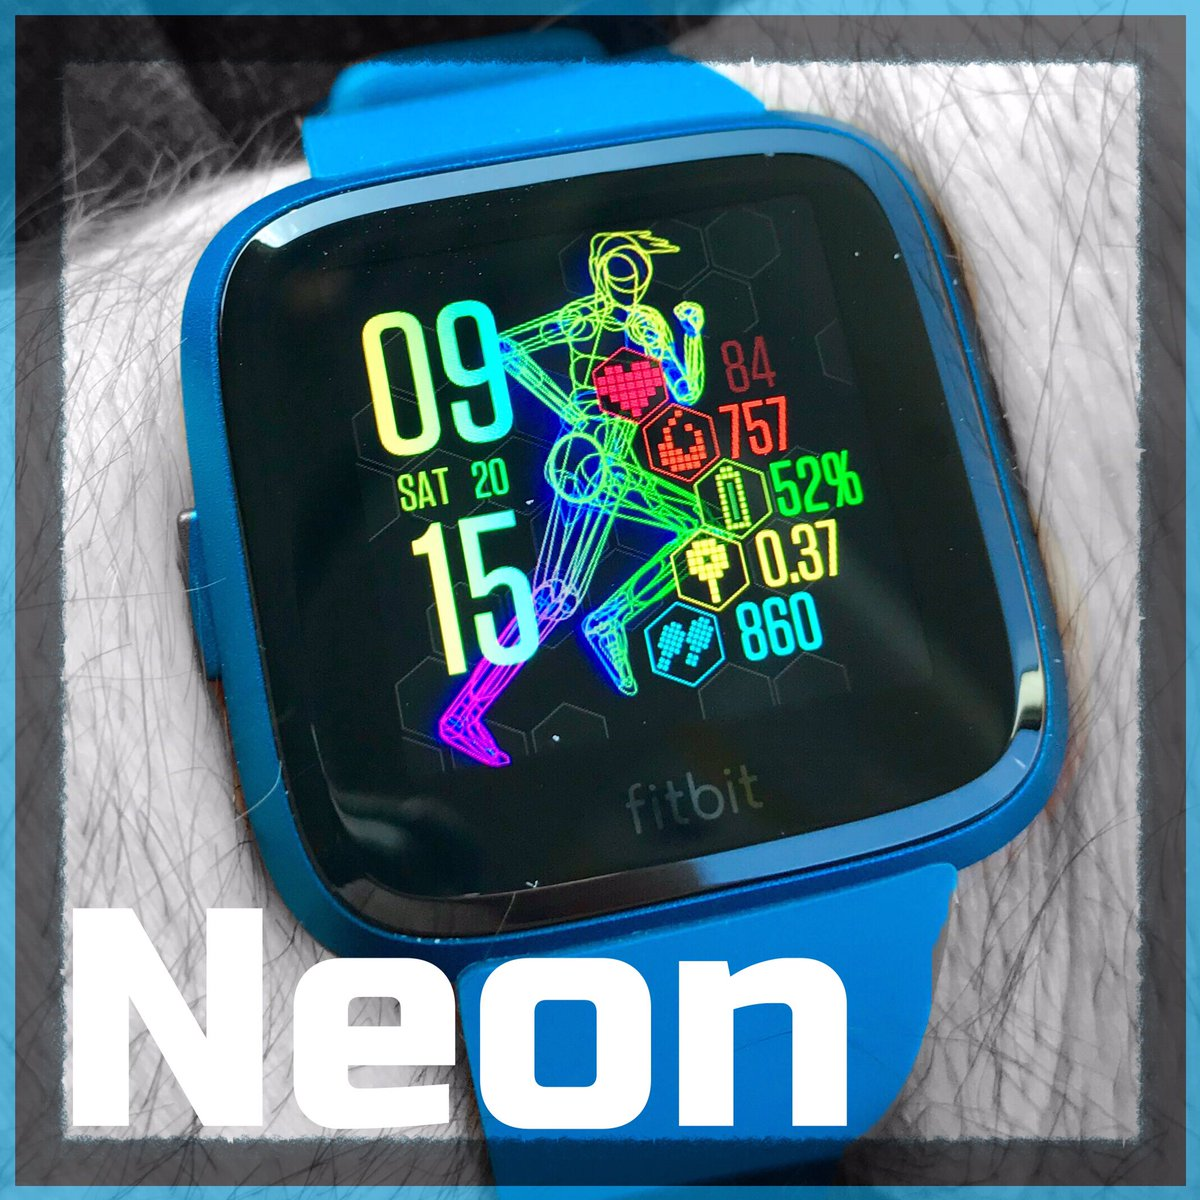 🏃🏻‍♂️Neon 🏃🏻‍♀️now available for #fitbitversalite #fitbit #fitbitversa #GOT #made4fitbit #steps #walking #fitness #FitnessMotivation